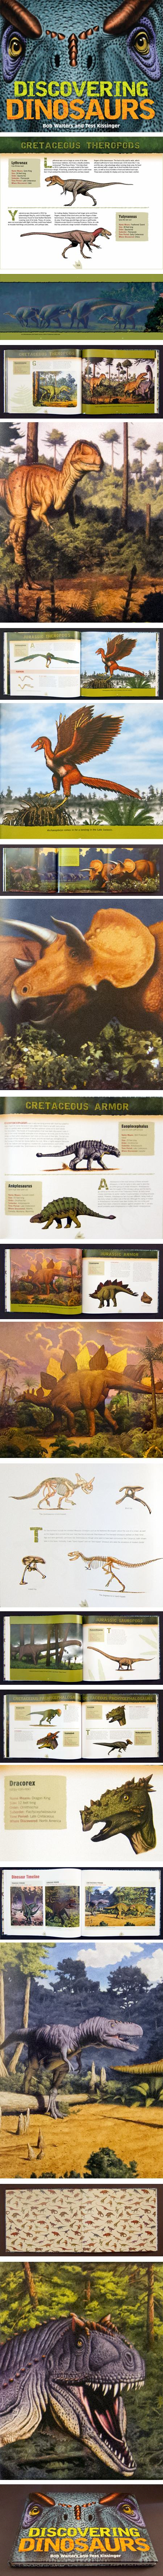 Discovering Dinosaurs, huge new dinosaur book by Bob Walters and Tess Kissinger